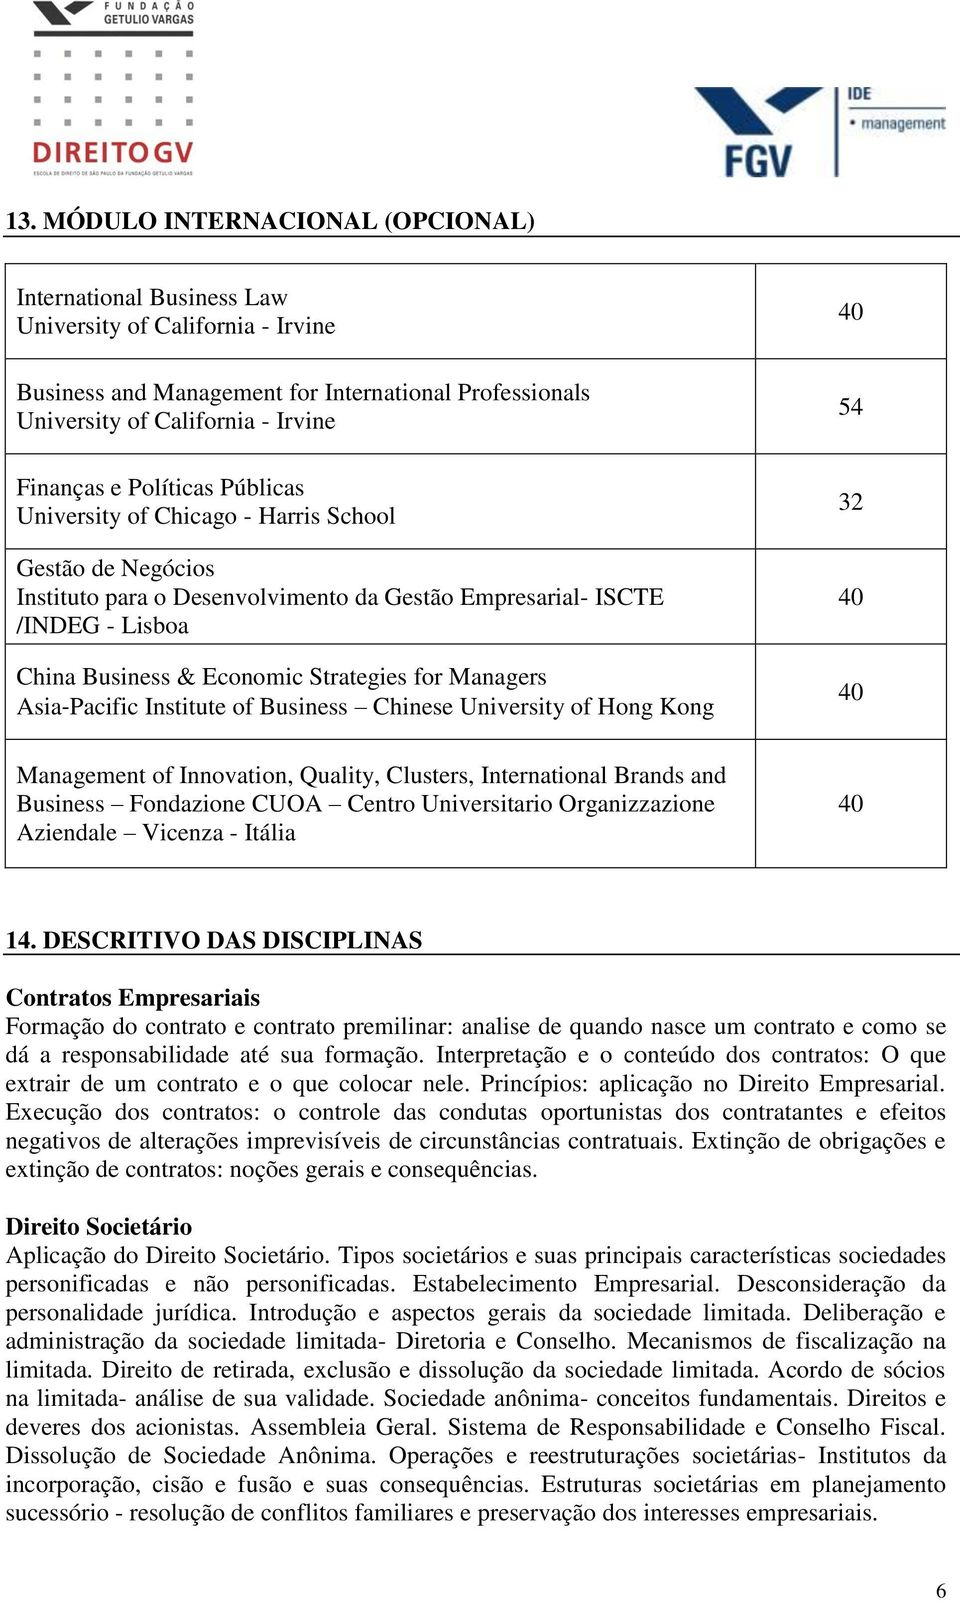 Managers Asia Pacific Institute of Business Chinese University of Hong Kong 40 54 32 40 40 Management of Innovation, Quality, Clusters, International Brands and Business Fondazione CUOA Centro